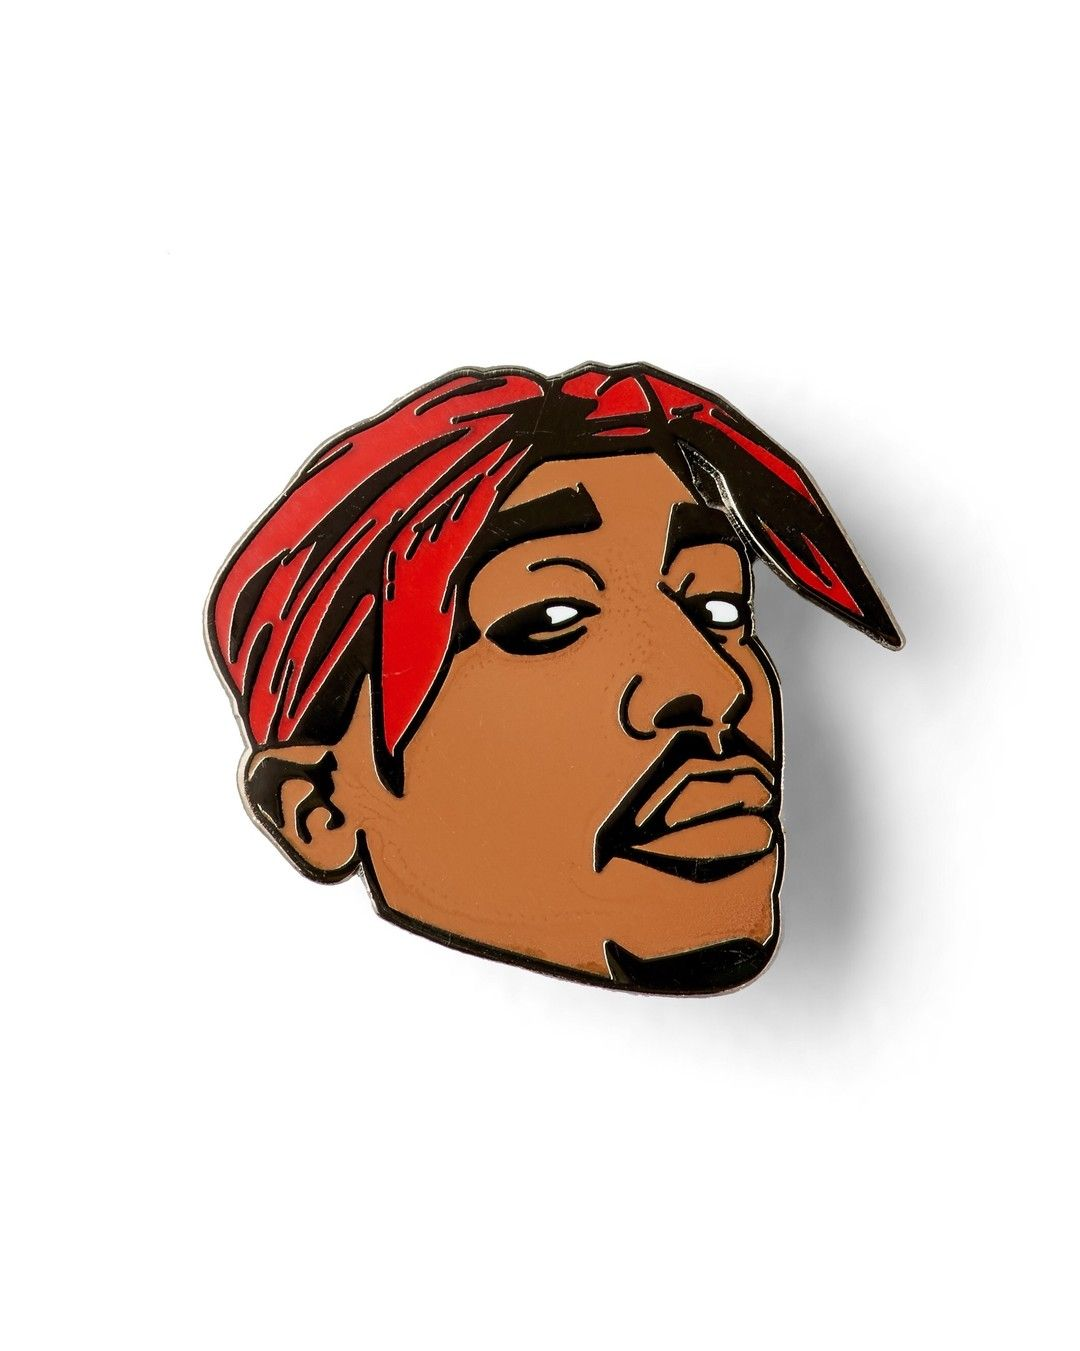 Tupac Pin From Goodhustlecompany But Still I See You Changes Get It Through Their Link In Bio Hip Hop Accessories Thug Life Lapel Pins [ 1351 x 1080 Pixel ]